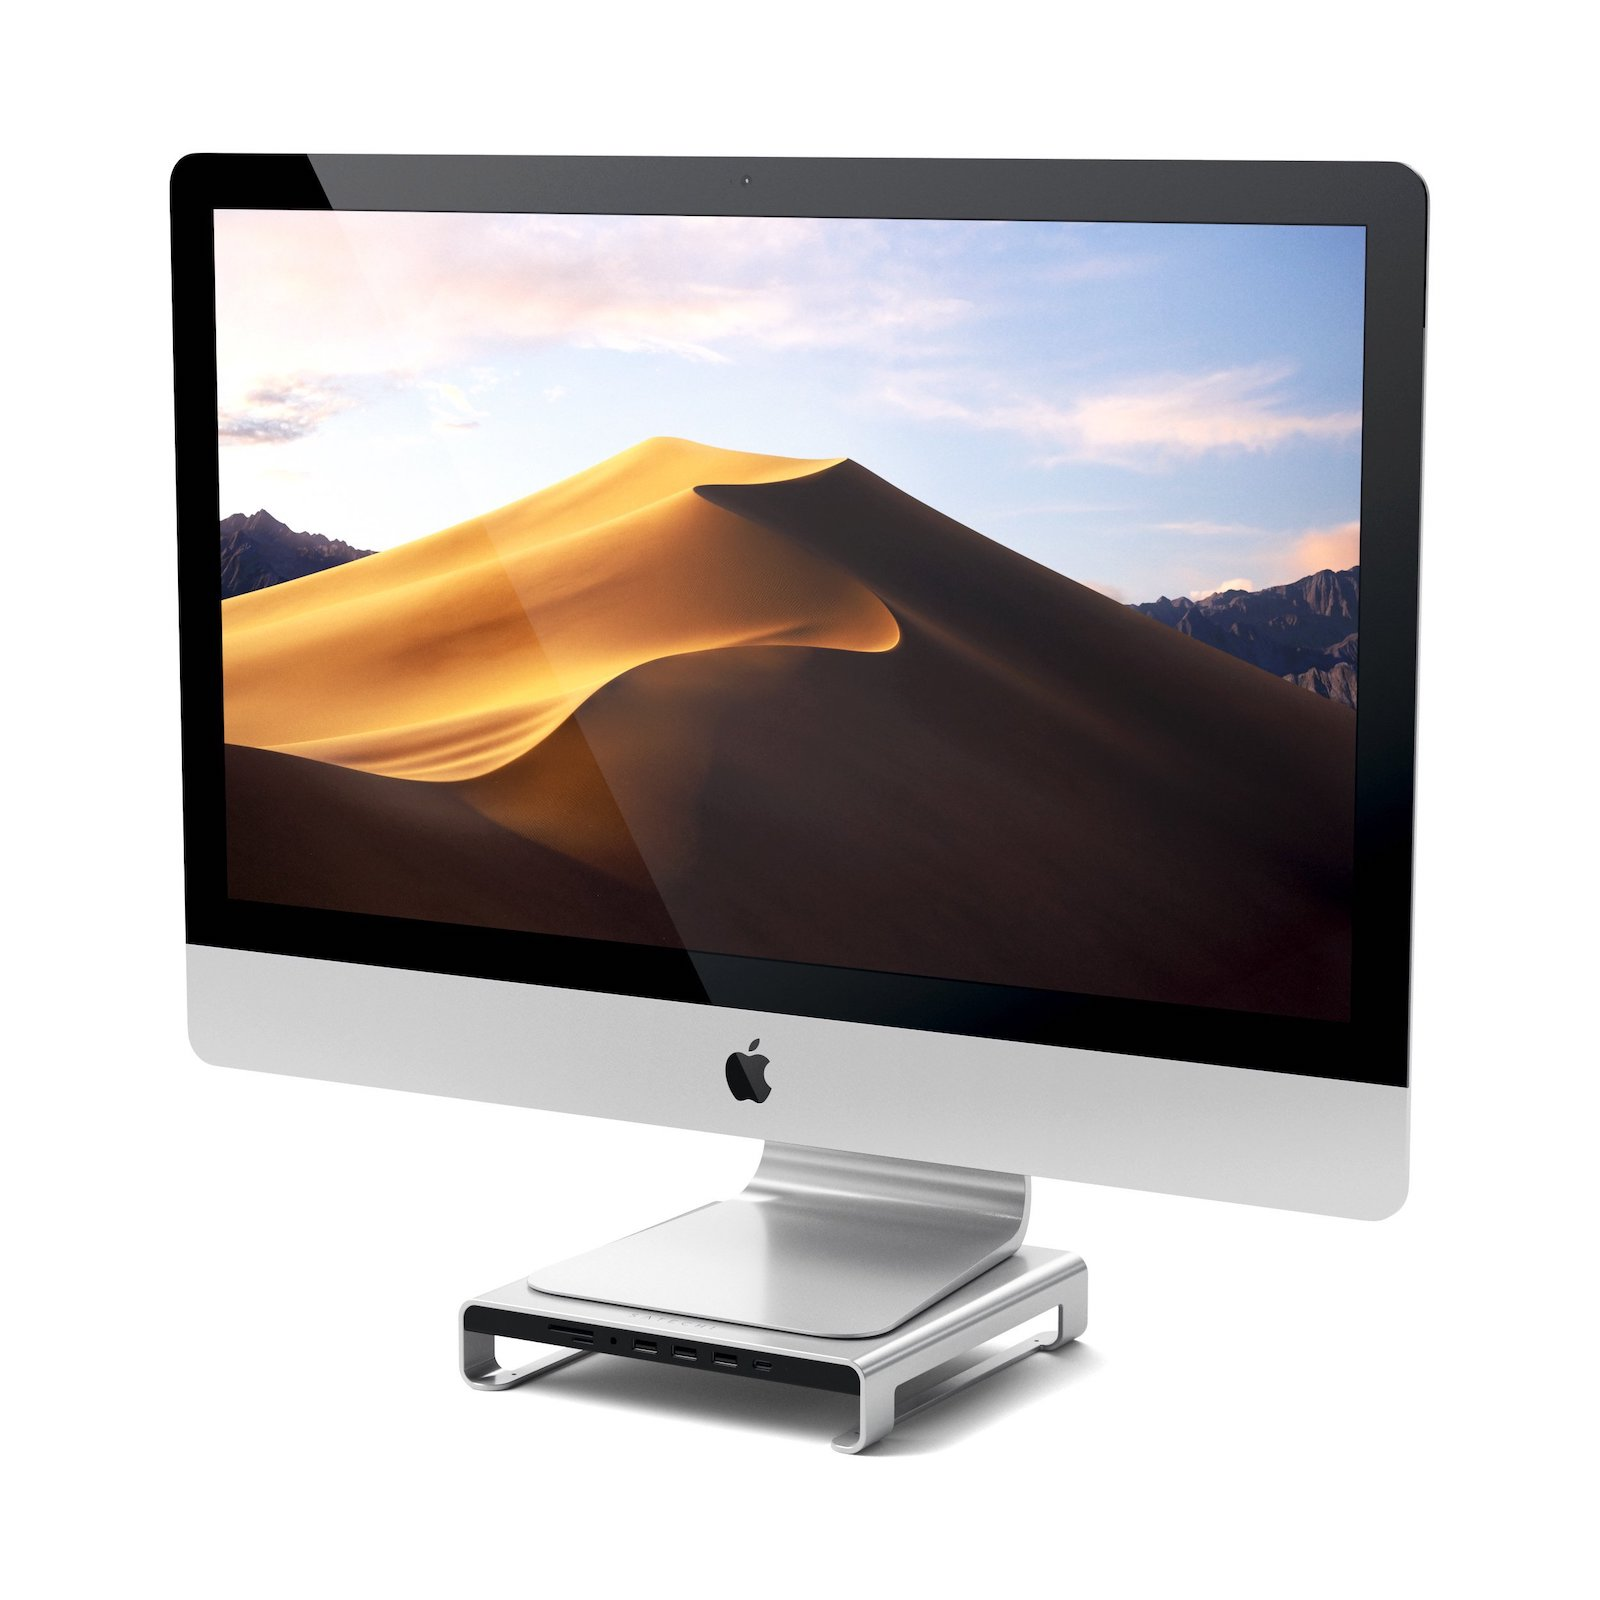 SATECHI_iMac_Stand_SILVER_9.jpg